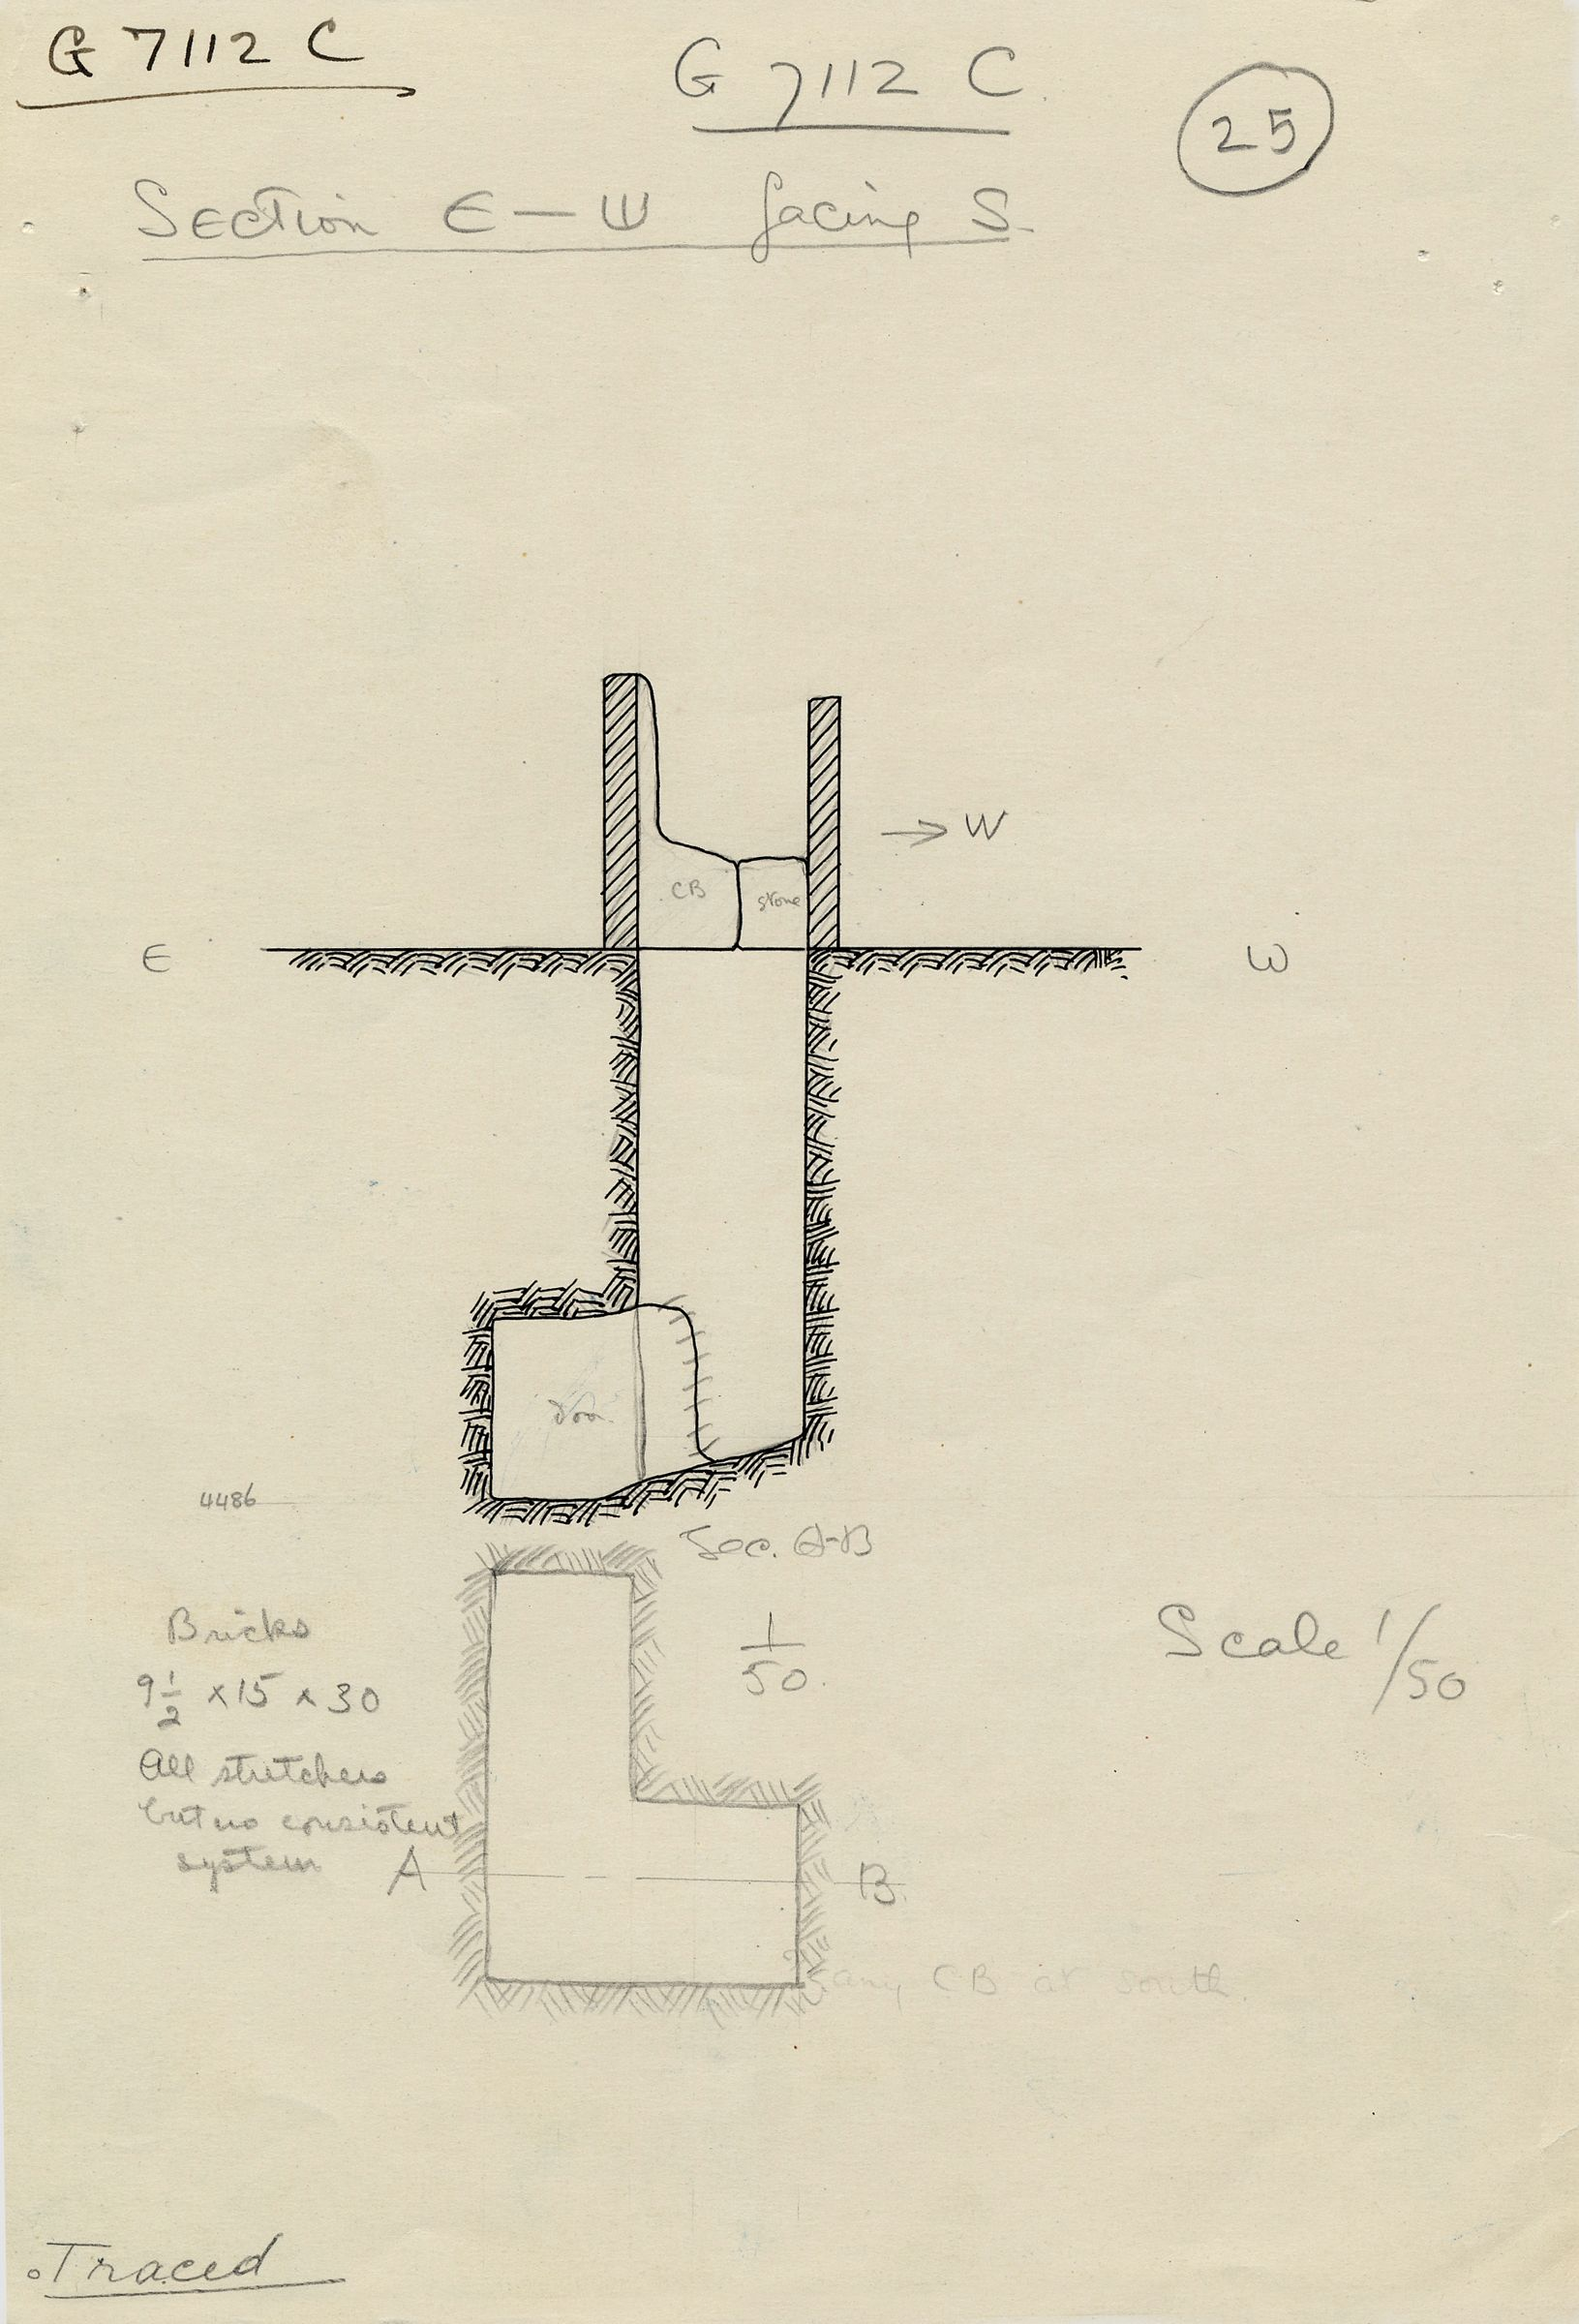 Maps and plans: G 7112, Shaft C